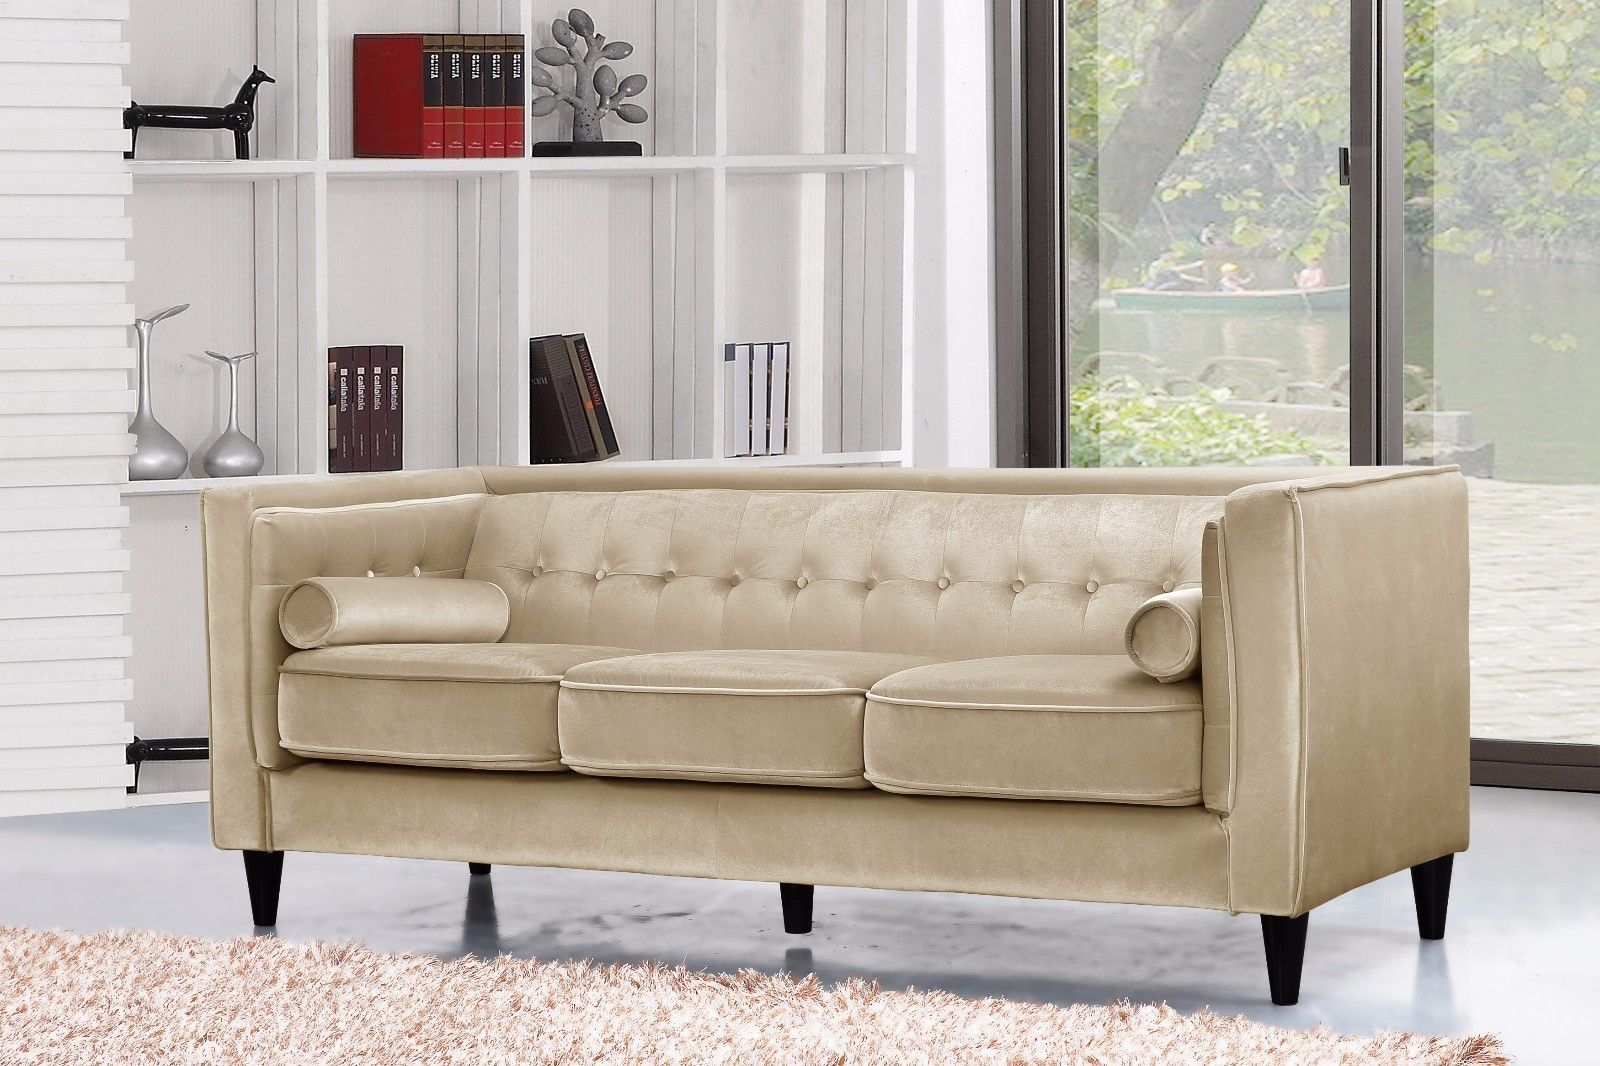 Meridian 642 Taylor Living Room Set 2pcs in Beige Velvet Contemporary Style